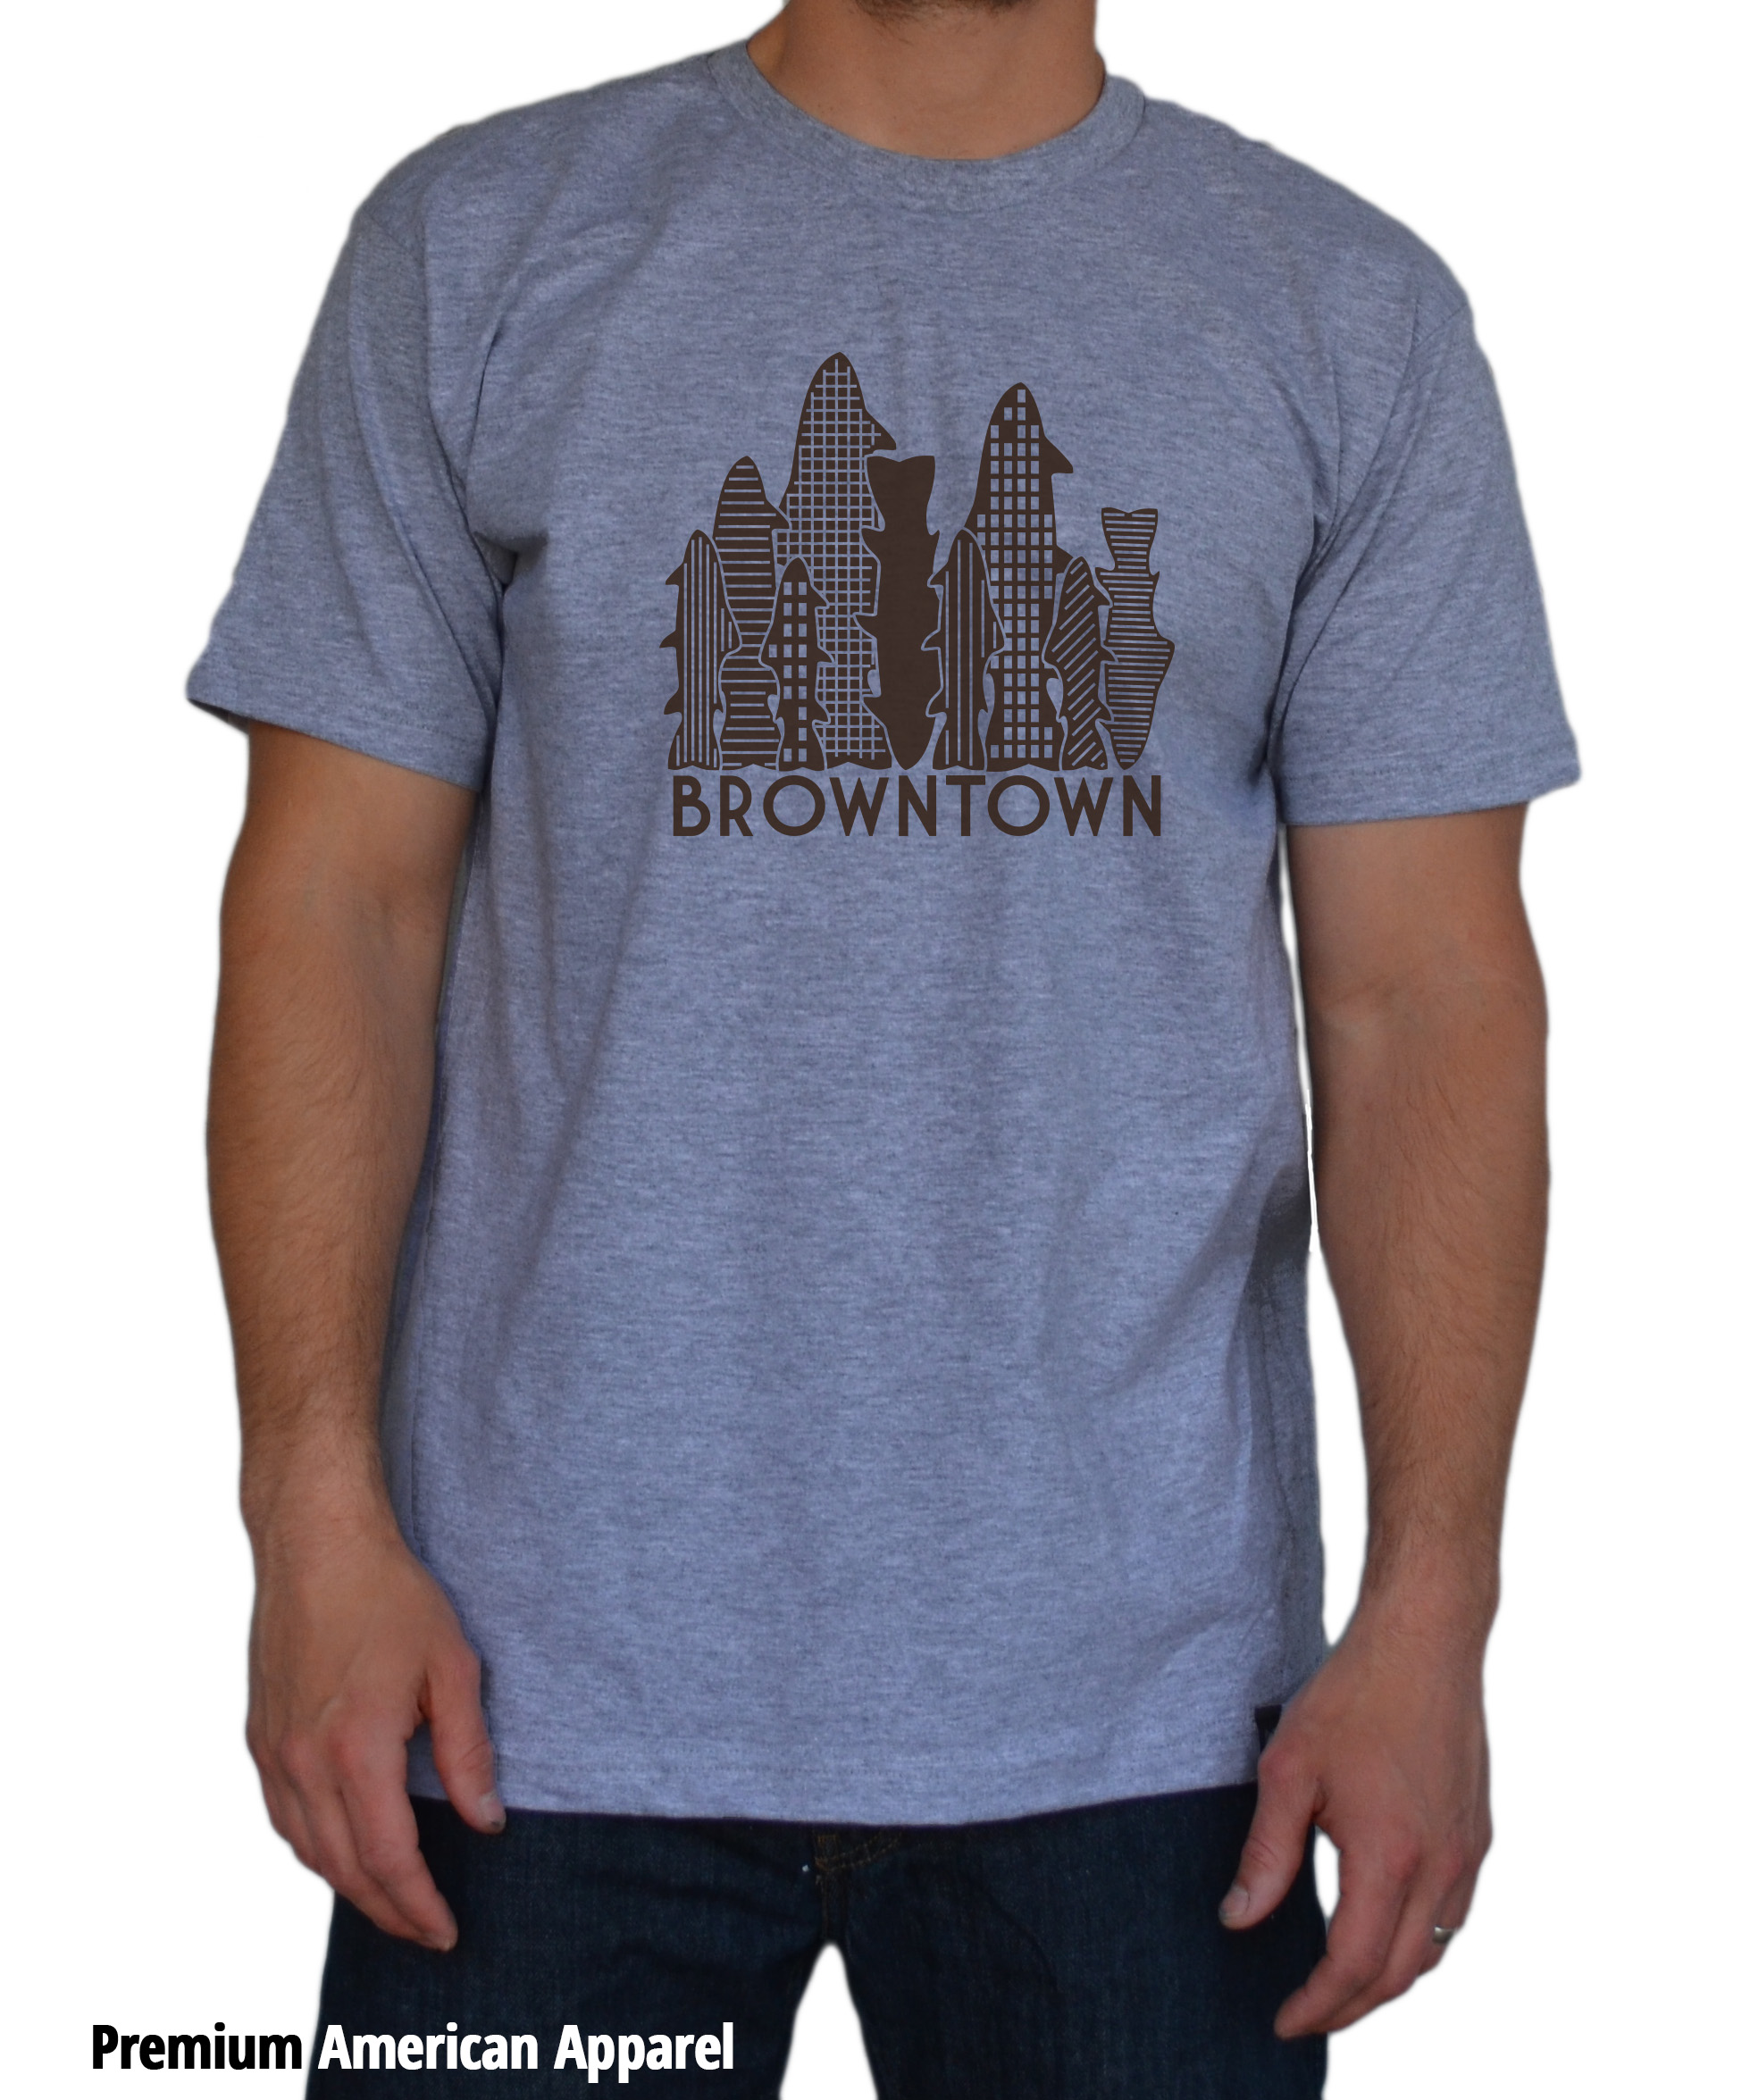 Browntown T Shirt The Fly Trout Fly Fishing T Shirts